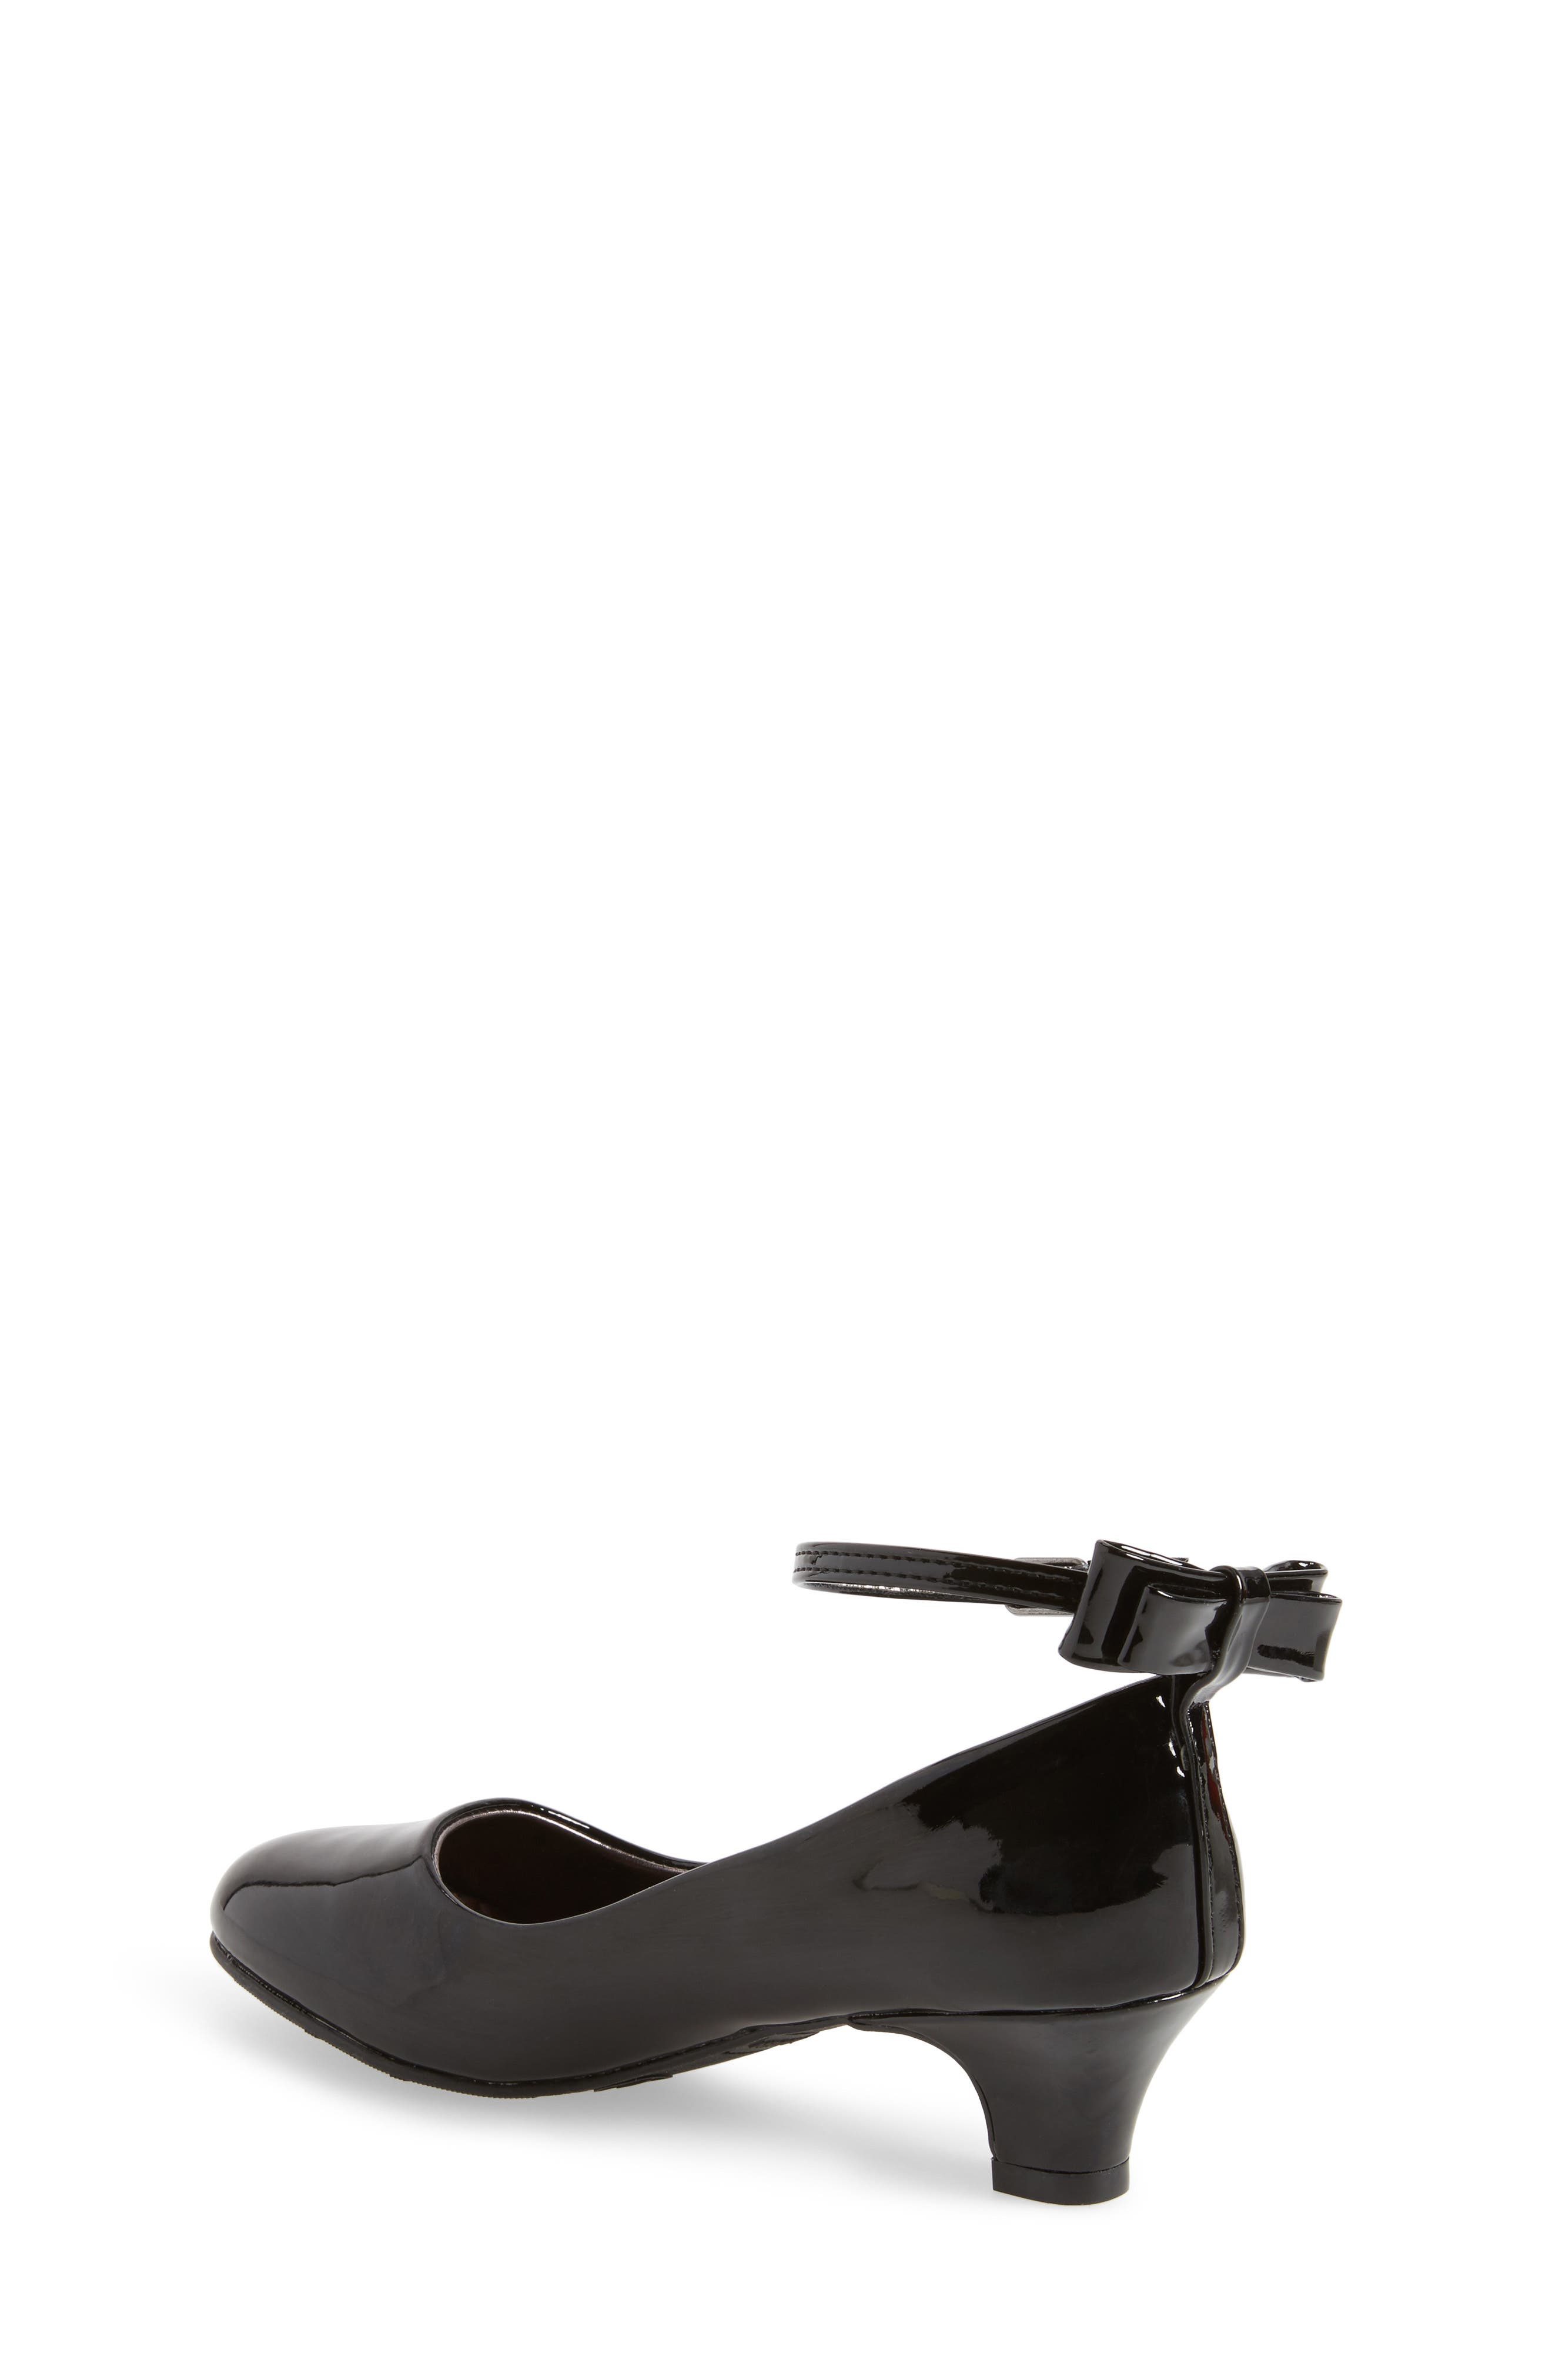 Alternate Image 2  - Steve Madden Jbeckyy Ankle Strap Bow Pump (Little Kid & Big Kid)